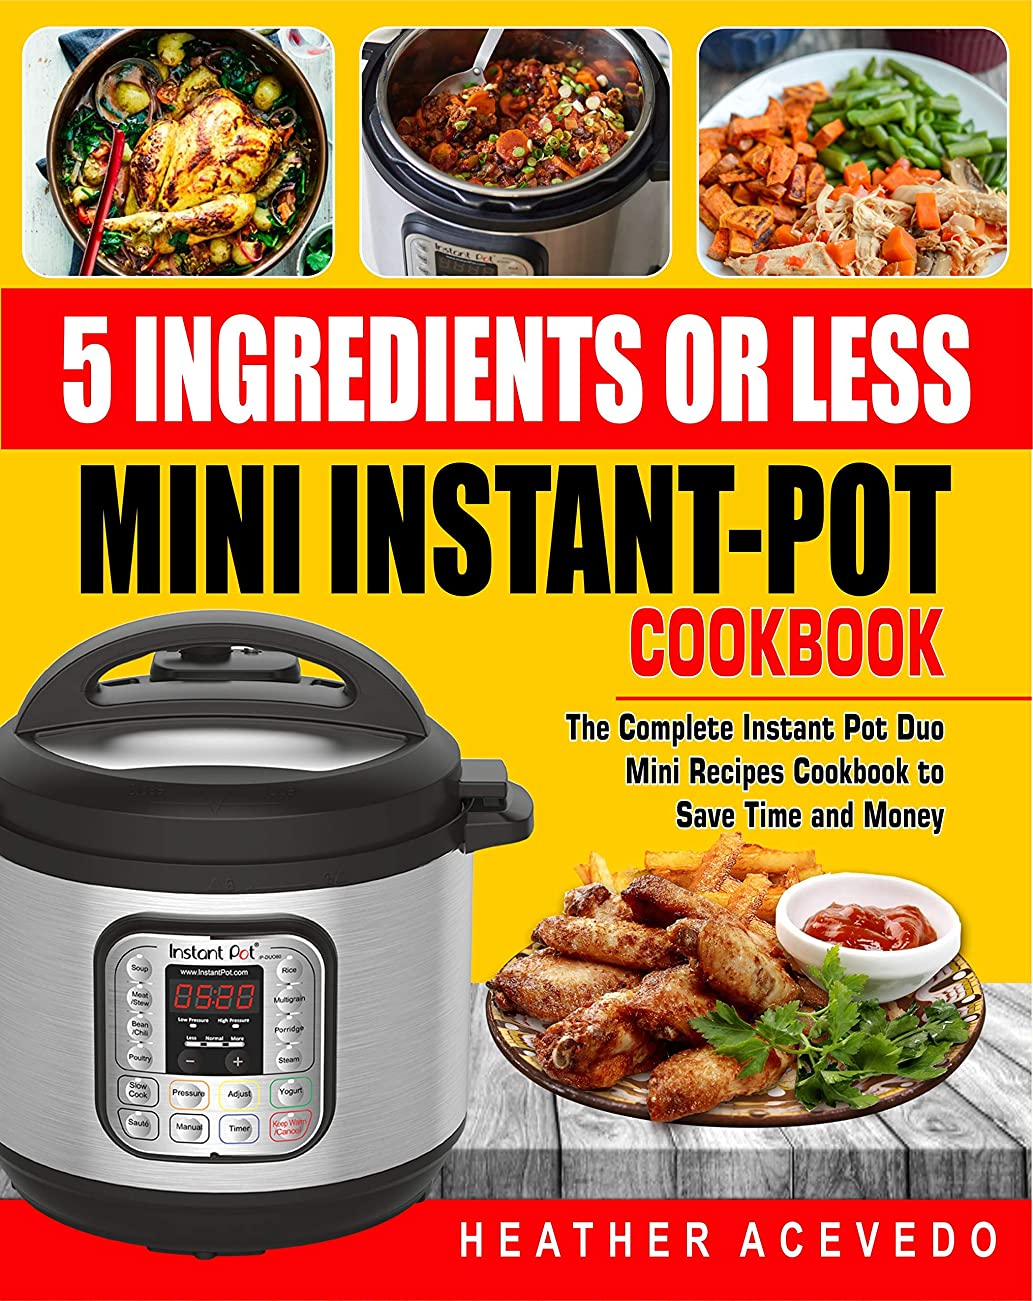 5 Ingredients or Less  Mini Instant Pot Cookbook: The Complete Instant Pot Duo Mini Recipes Cookbook to Save Time and Money- Instant Pot Recipes for Weight Loss and Health (English Edition)